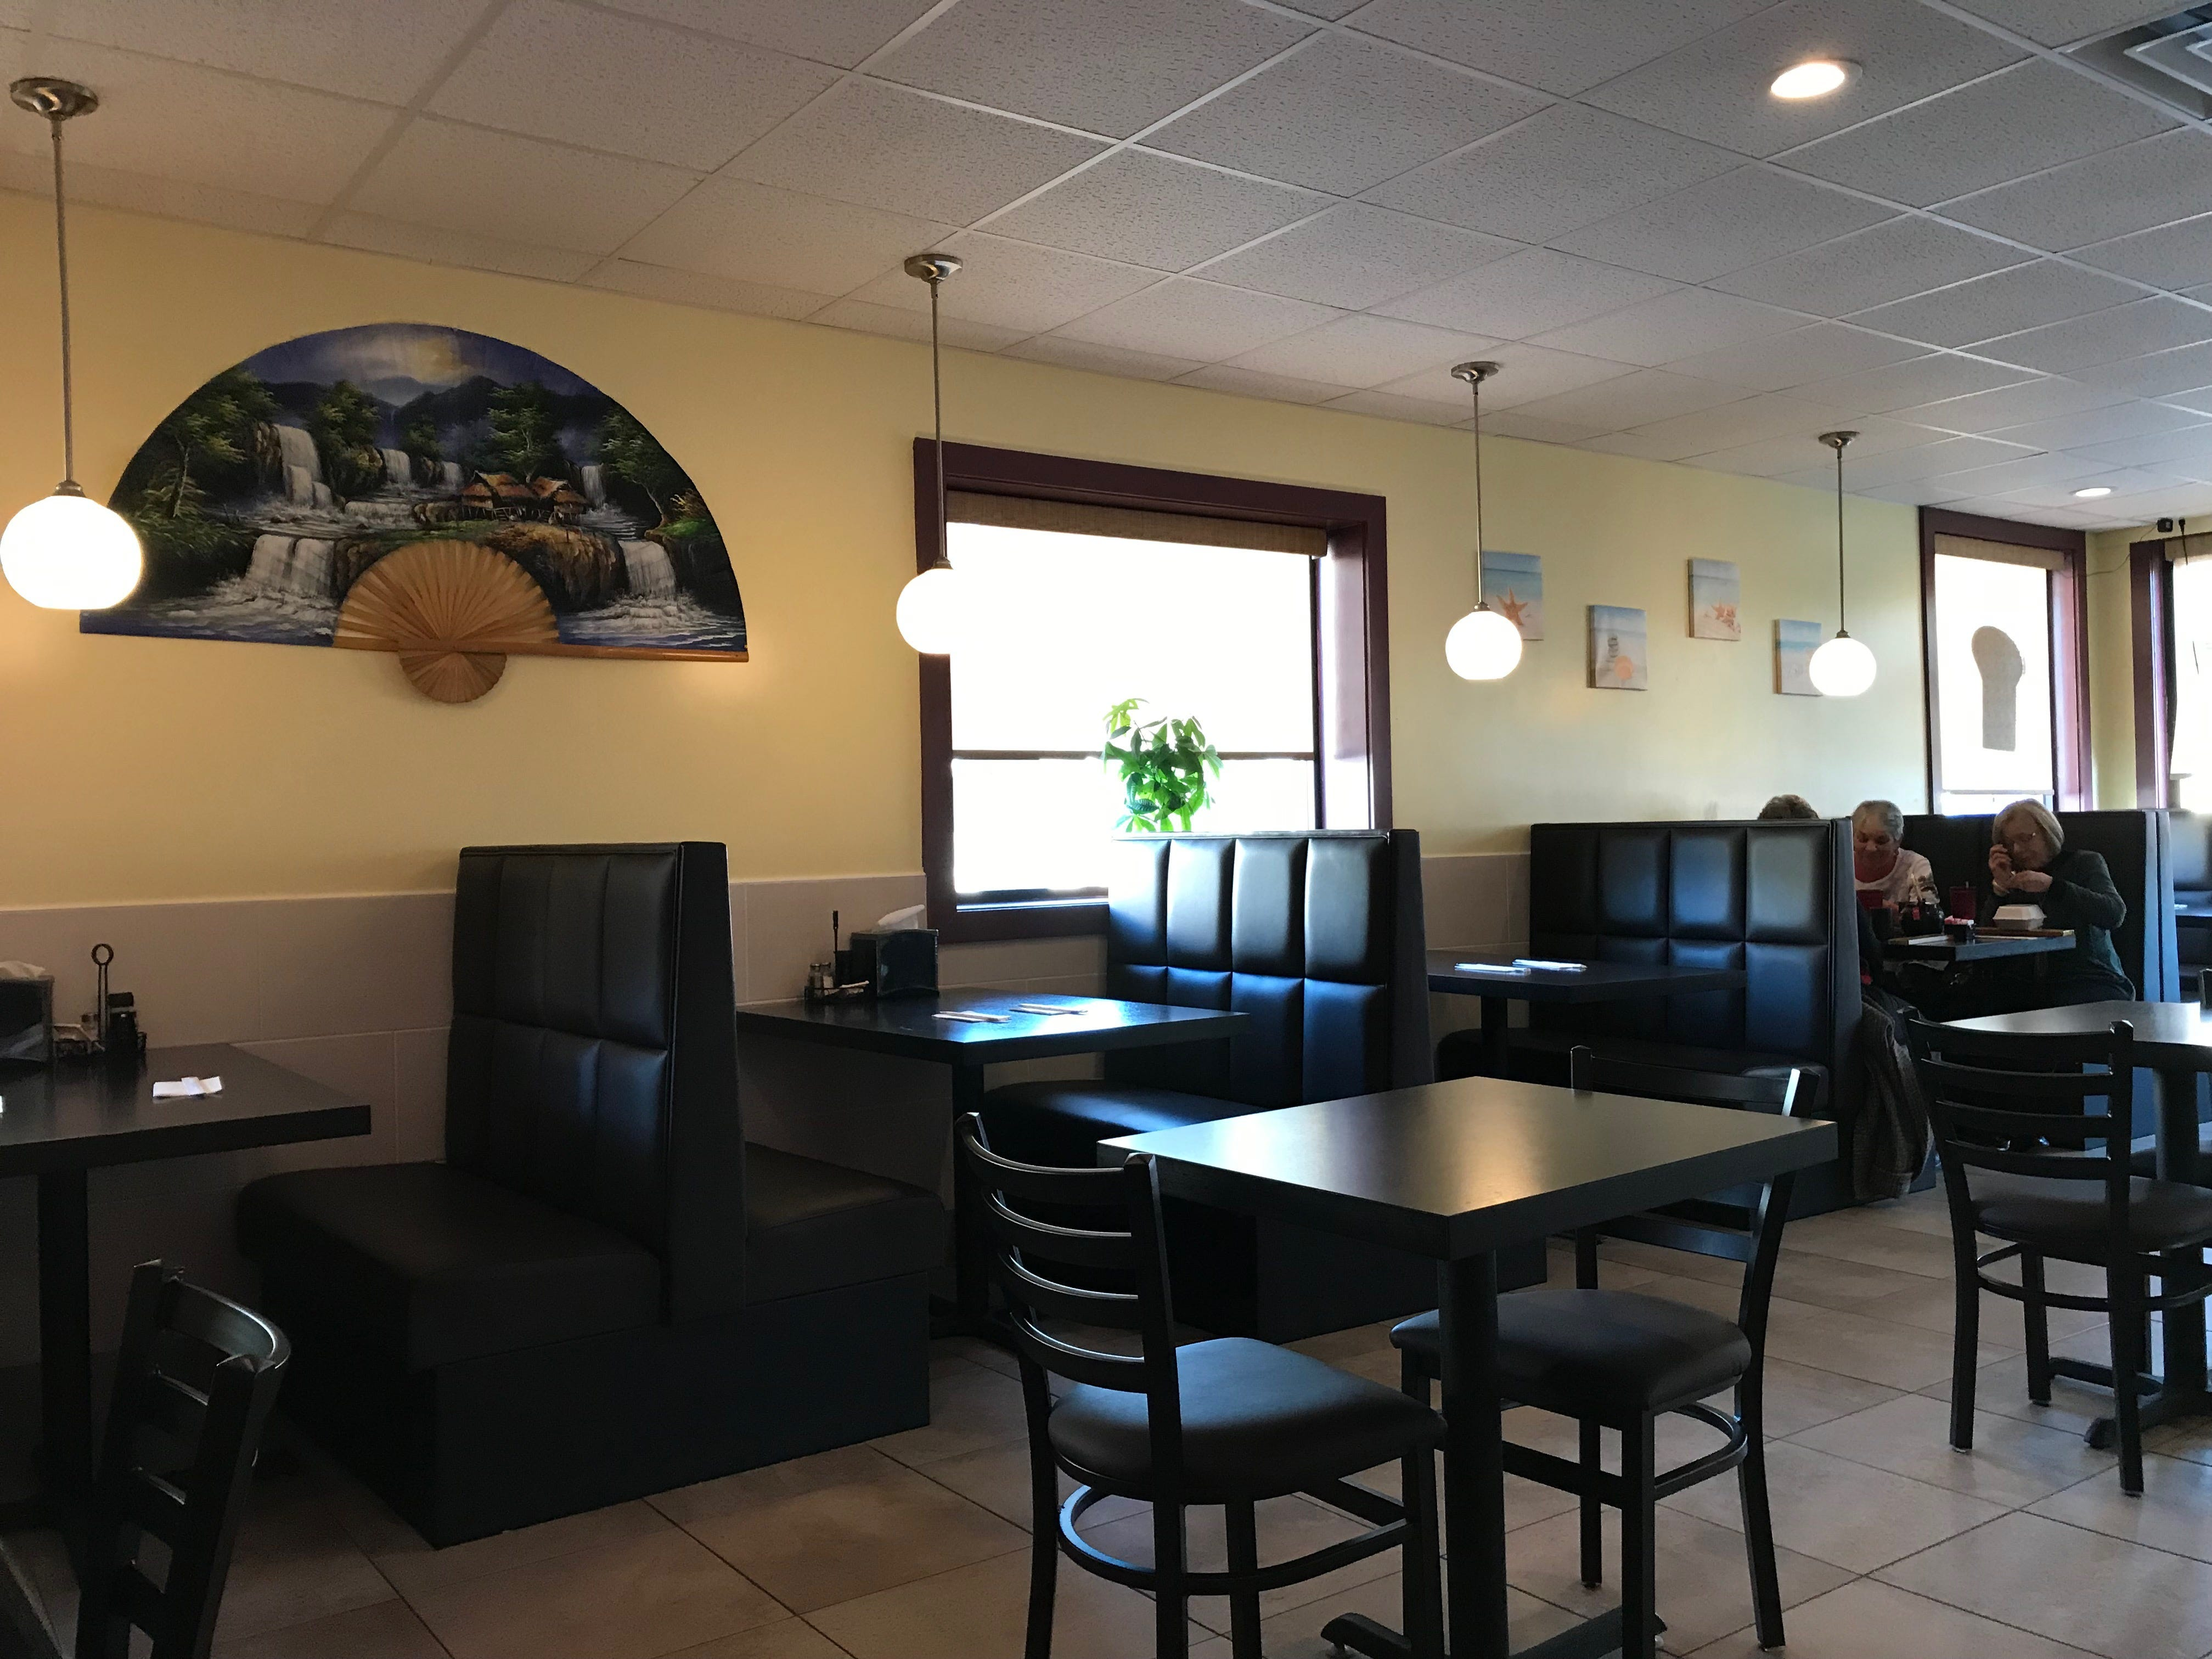 The dining area at Sakura Sushi & Thai in Manitowoc.